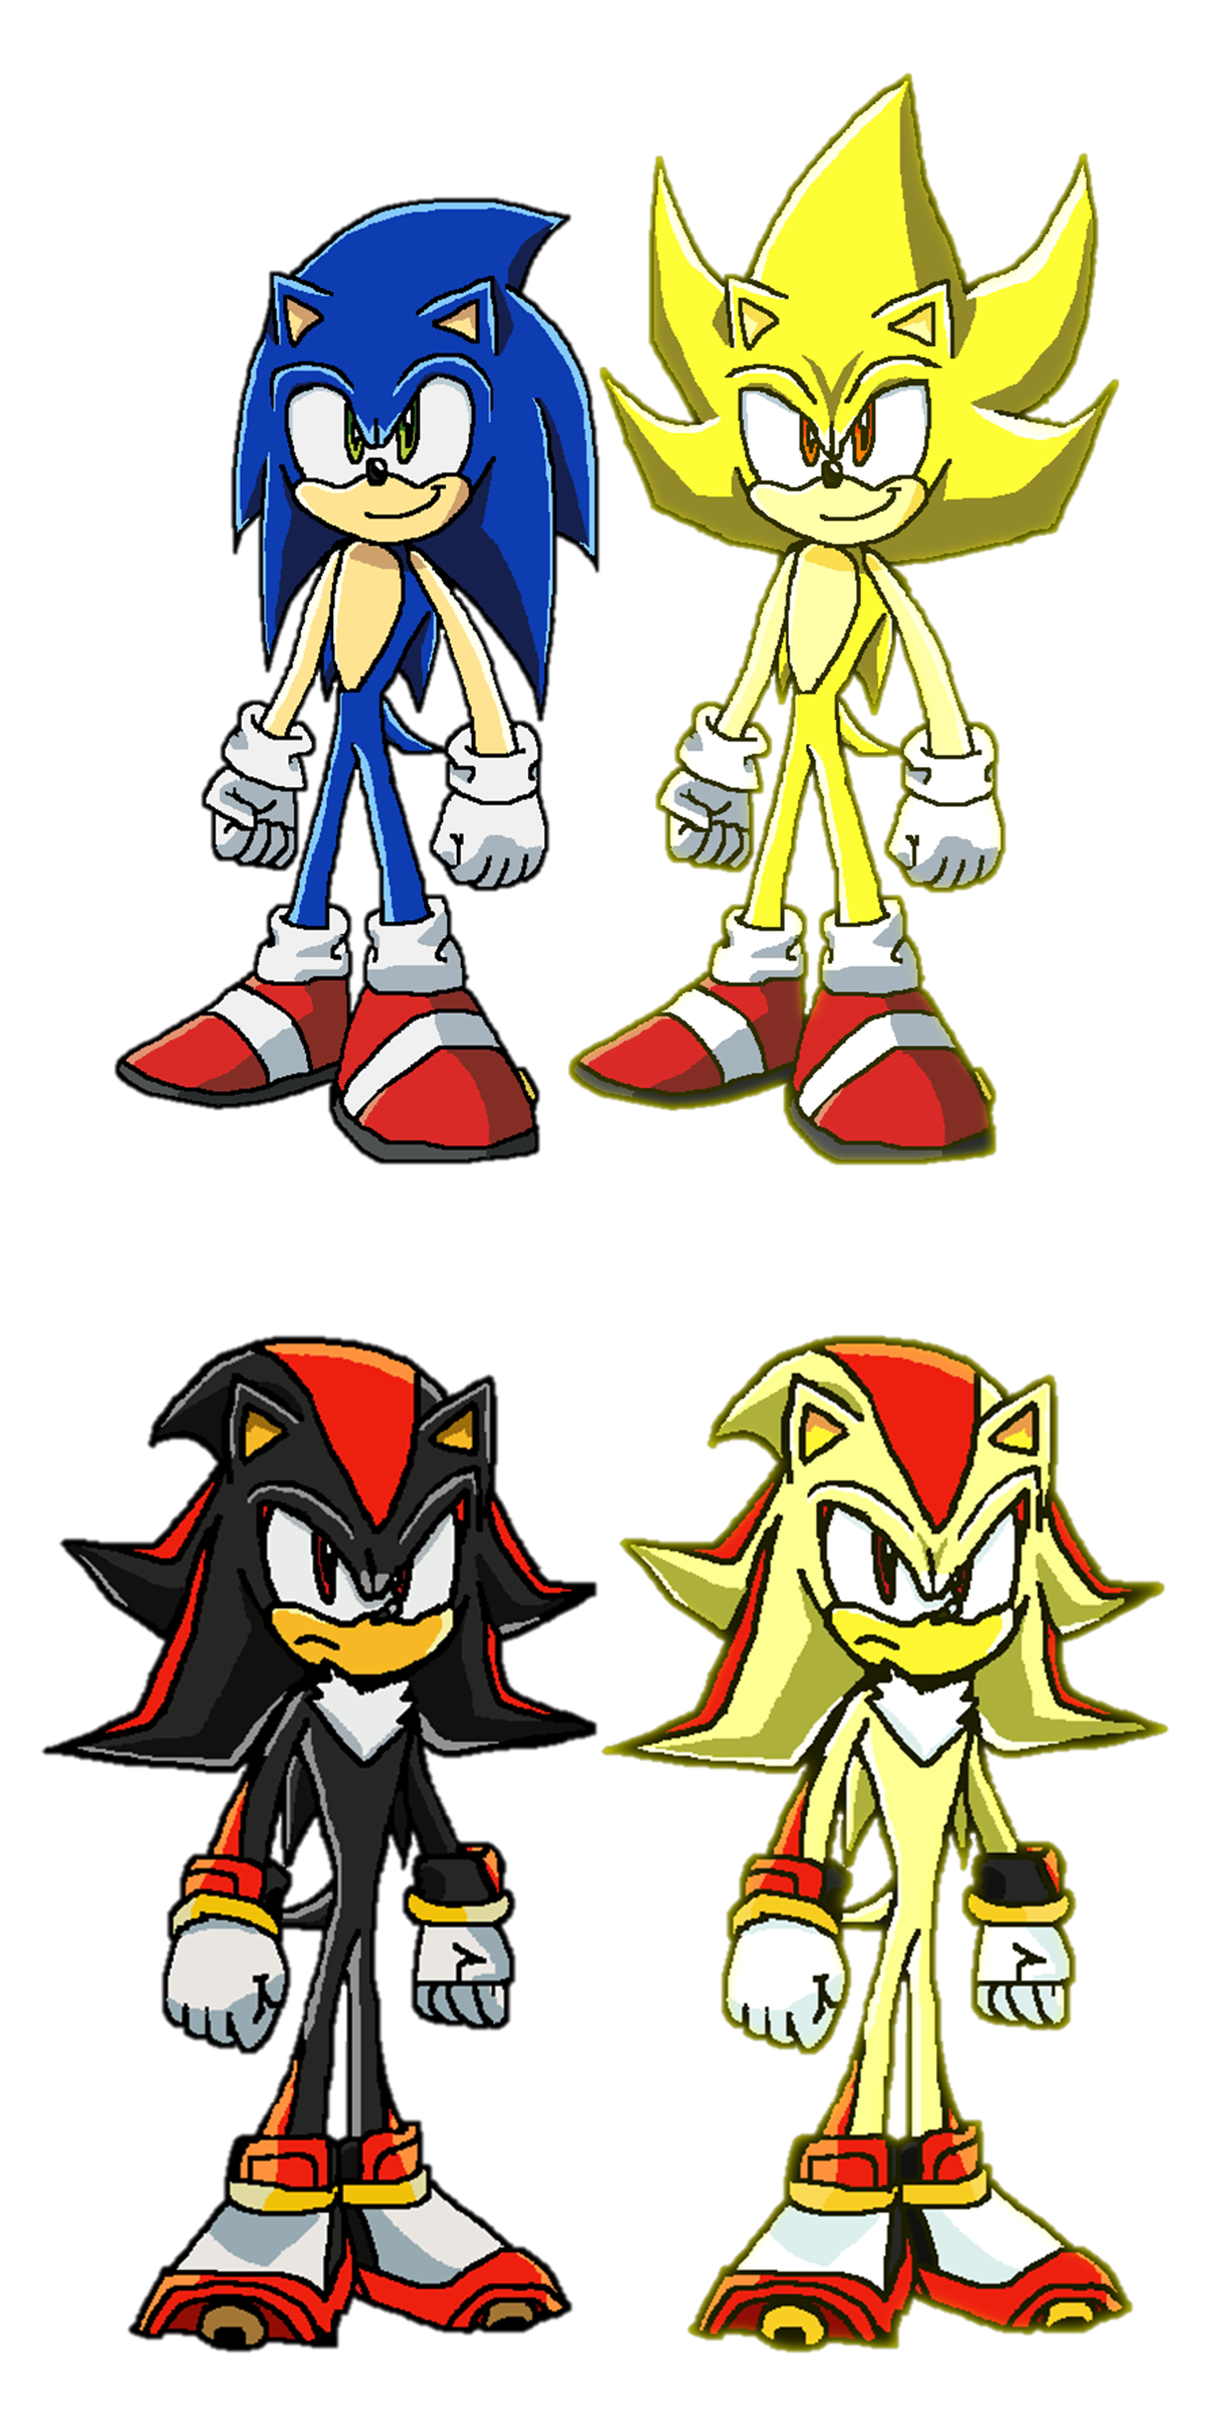 Super sonic the hedgehog by 9029561 on deviantart - Sonic et shadow ...